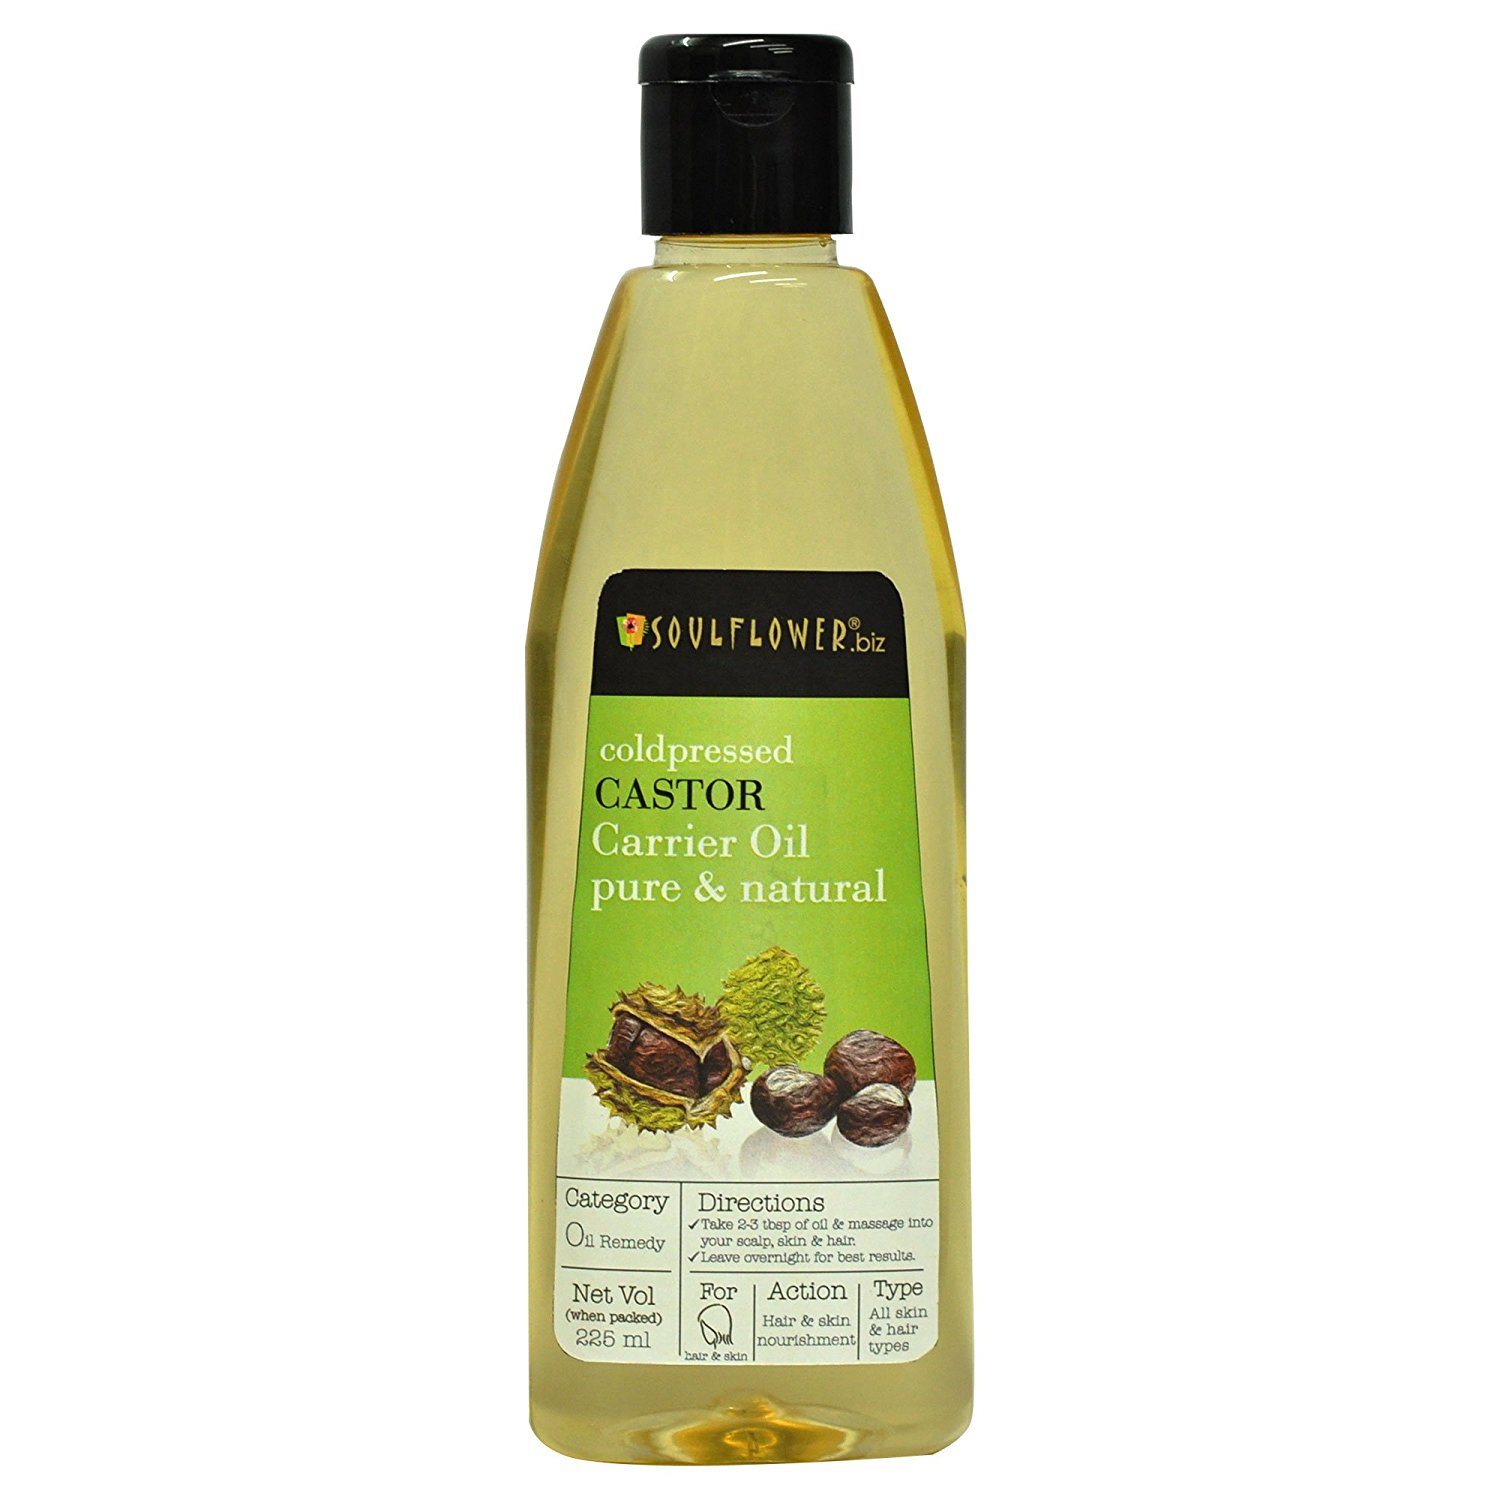 7 Most Effective Castor Oil Brands Available in India • Keep Me Stylish